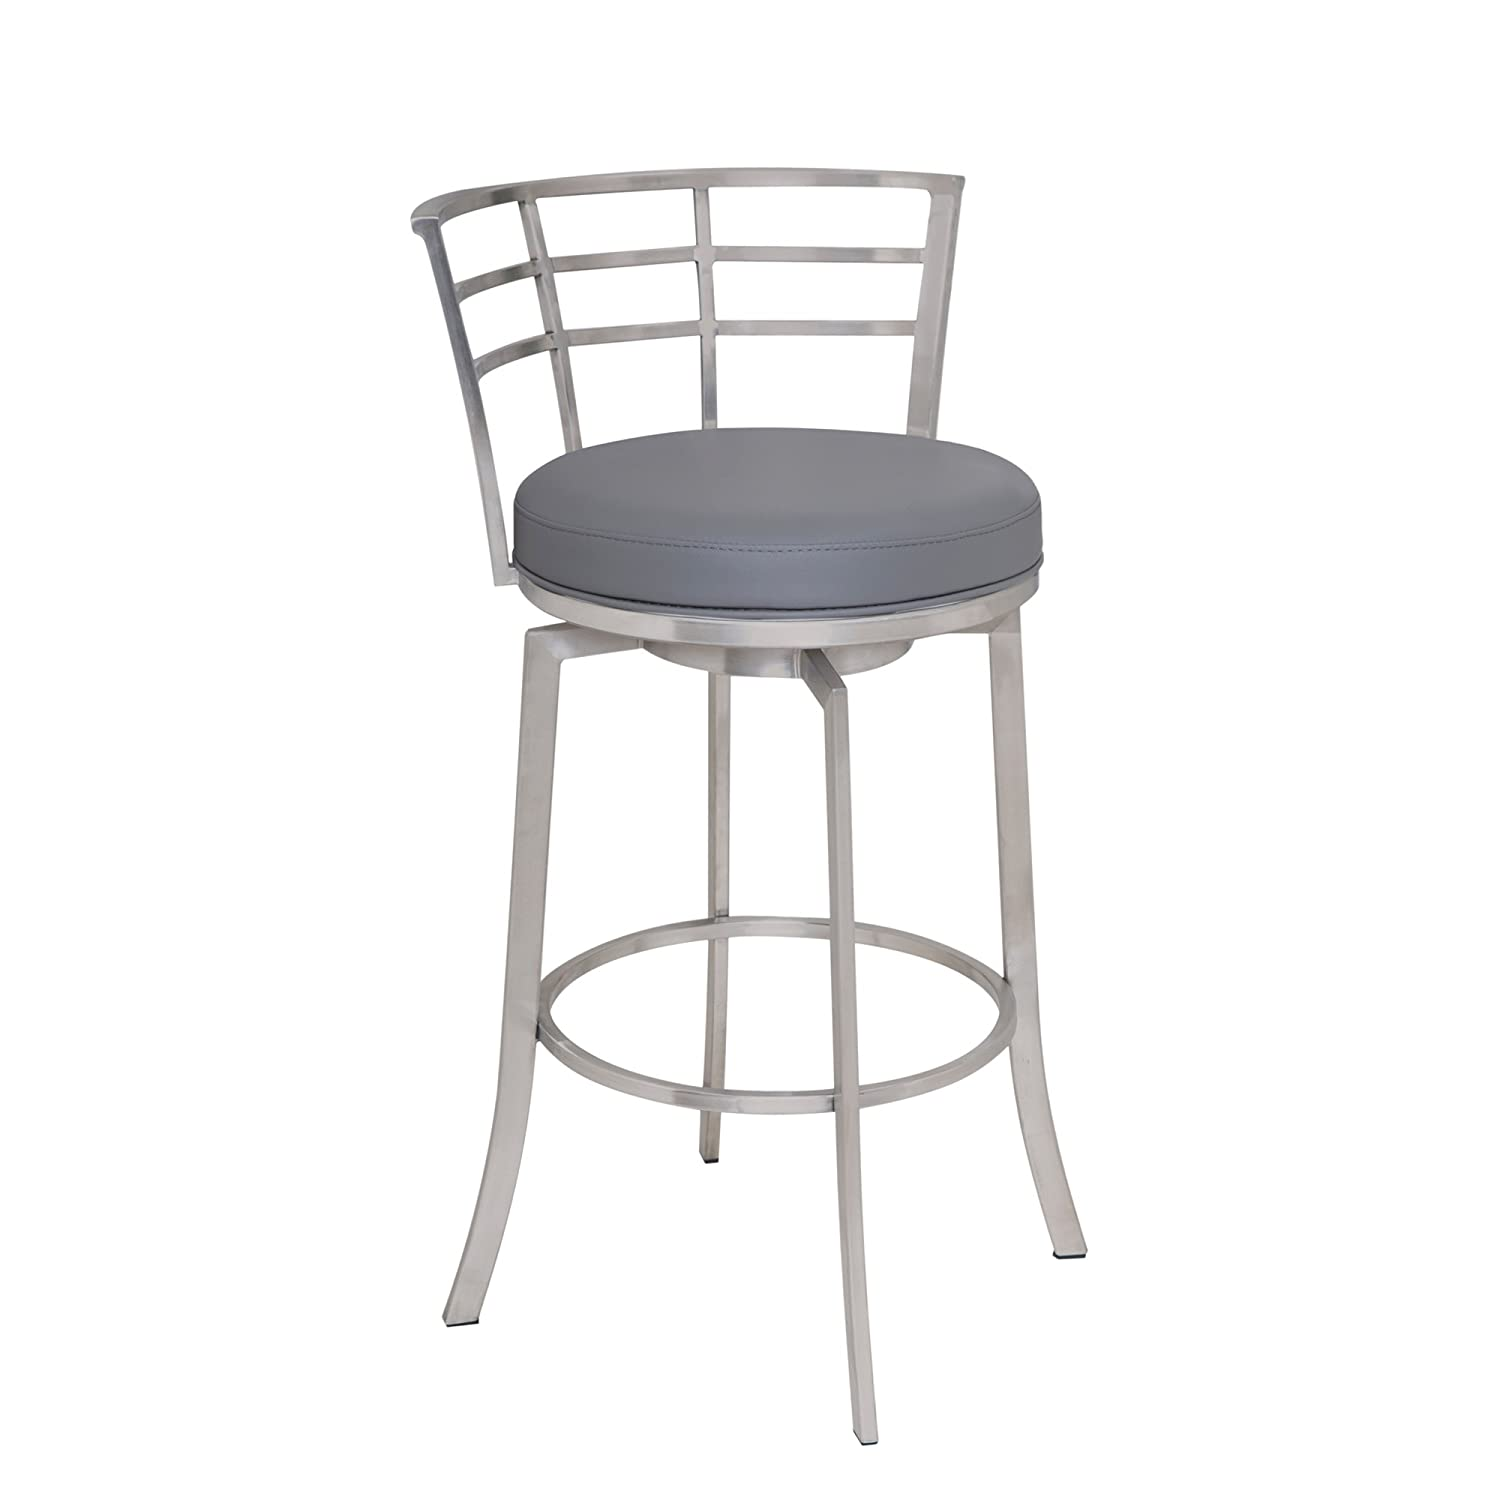 Armen Living LCVI26BAGR Viper 26 Counter Height Swivel Barstool in Grey Faux Leather and Brushed Stainless Steel Finish